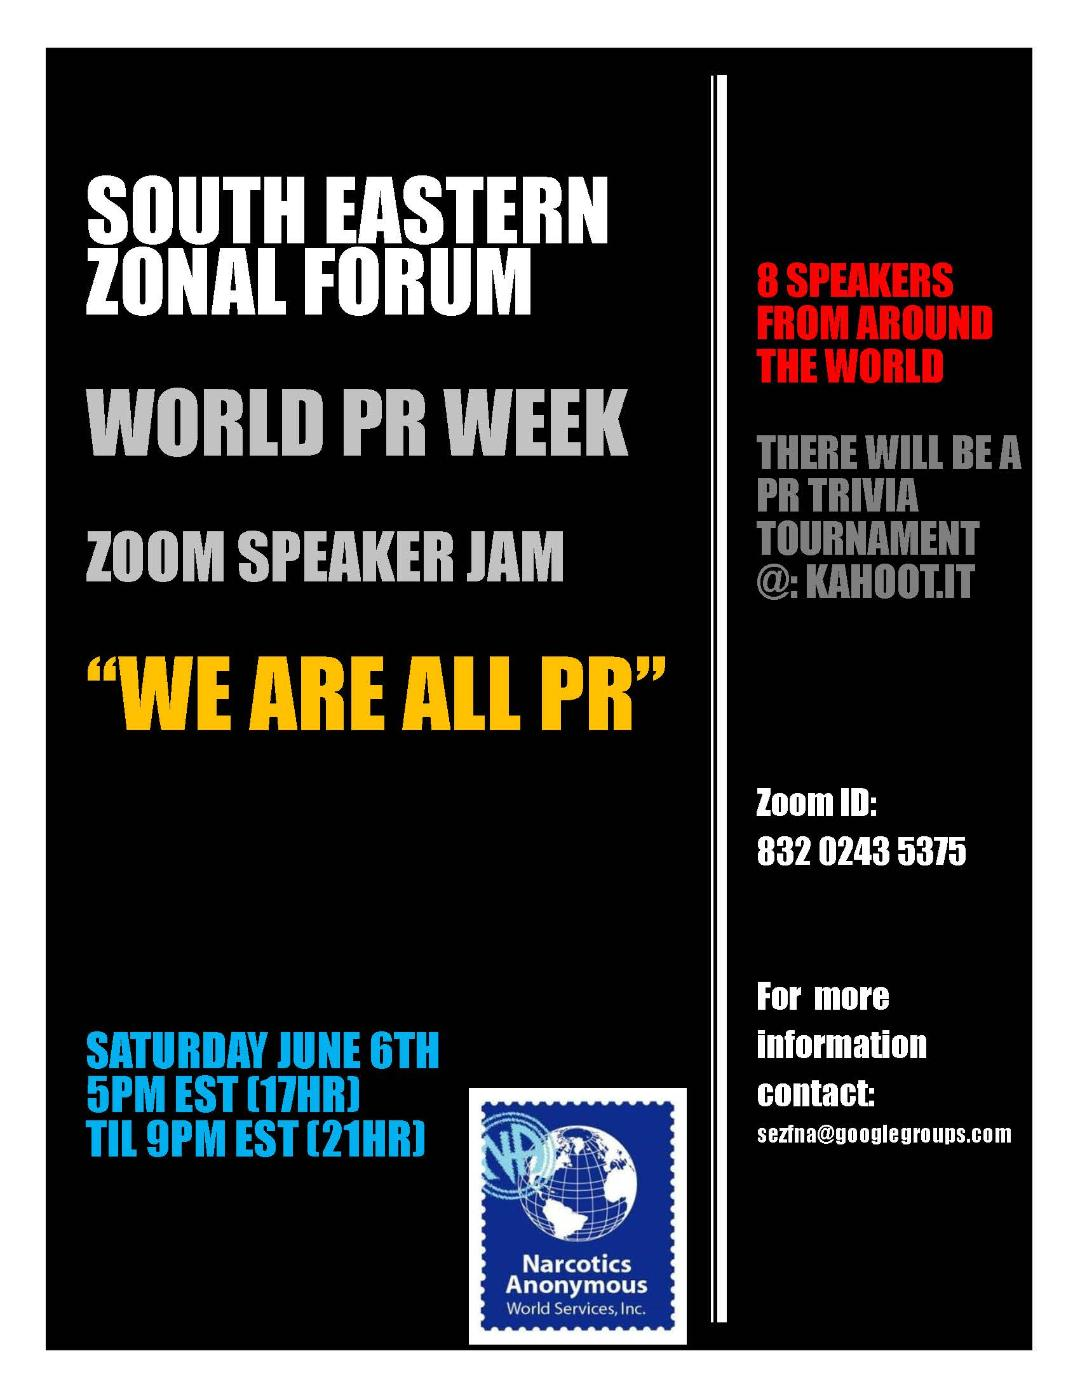 South Eastern Zonal Forum World PR Week